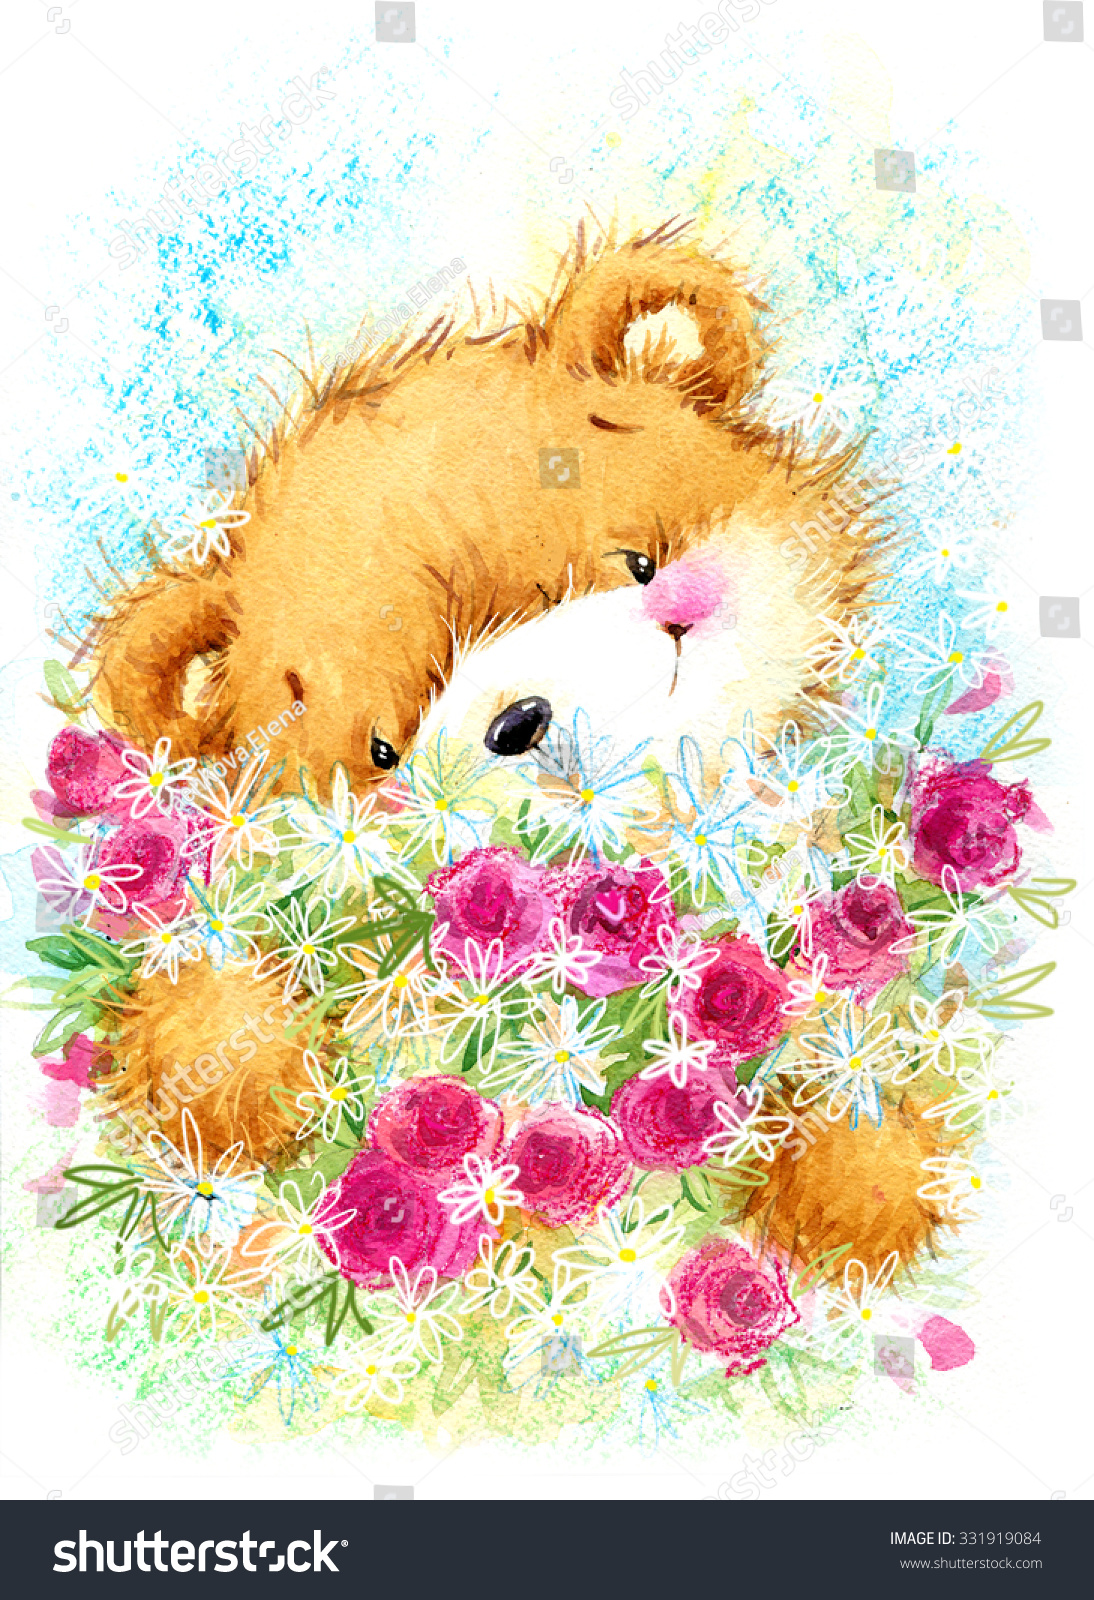 cute toy teddy bear and Birthday card background watercolor illustration